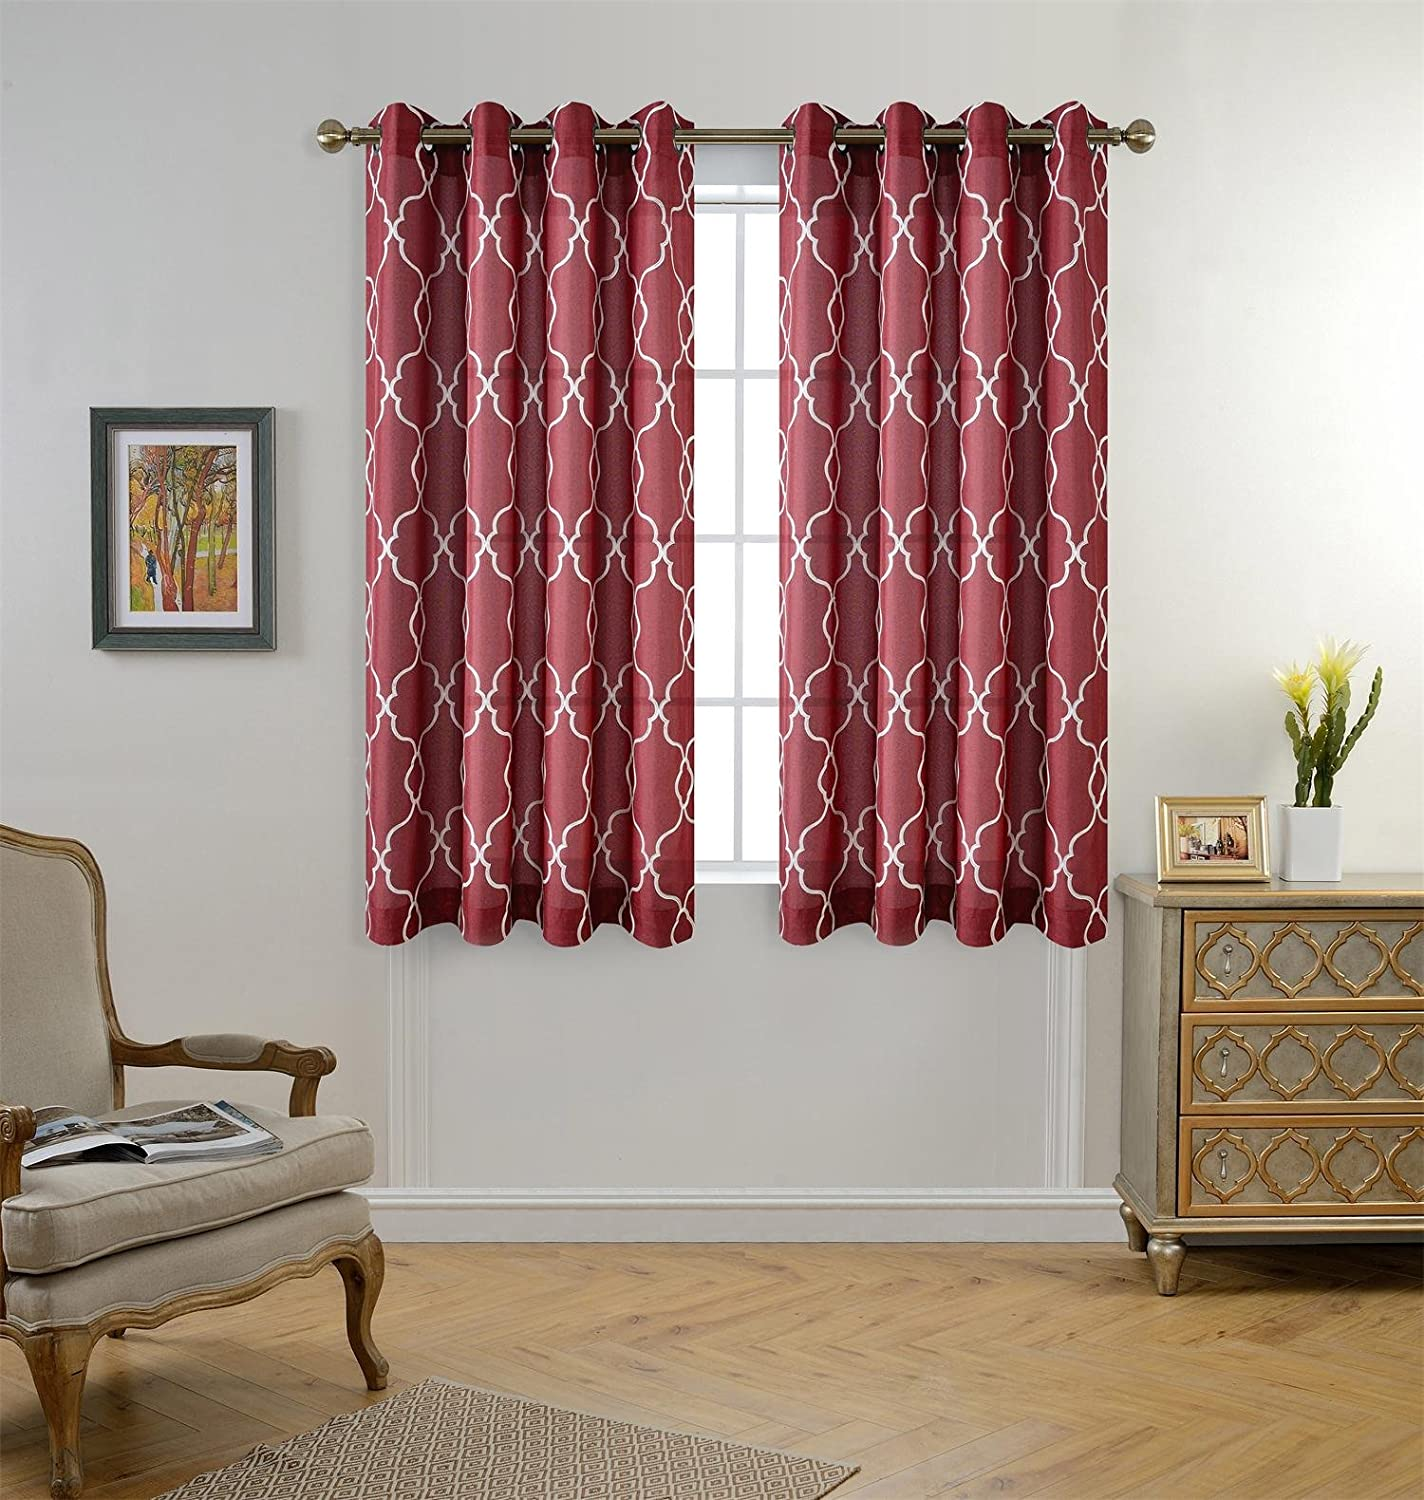 Red Sheer Shower Curtains Sets For Moroccan Style Bathroom With